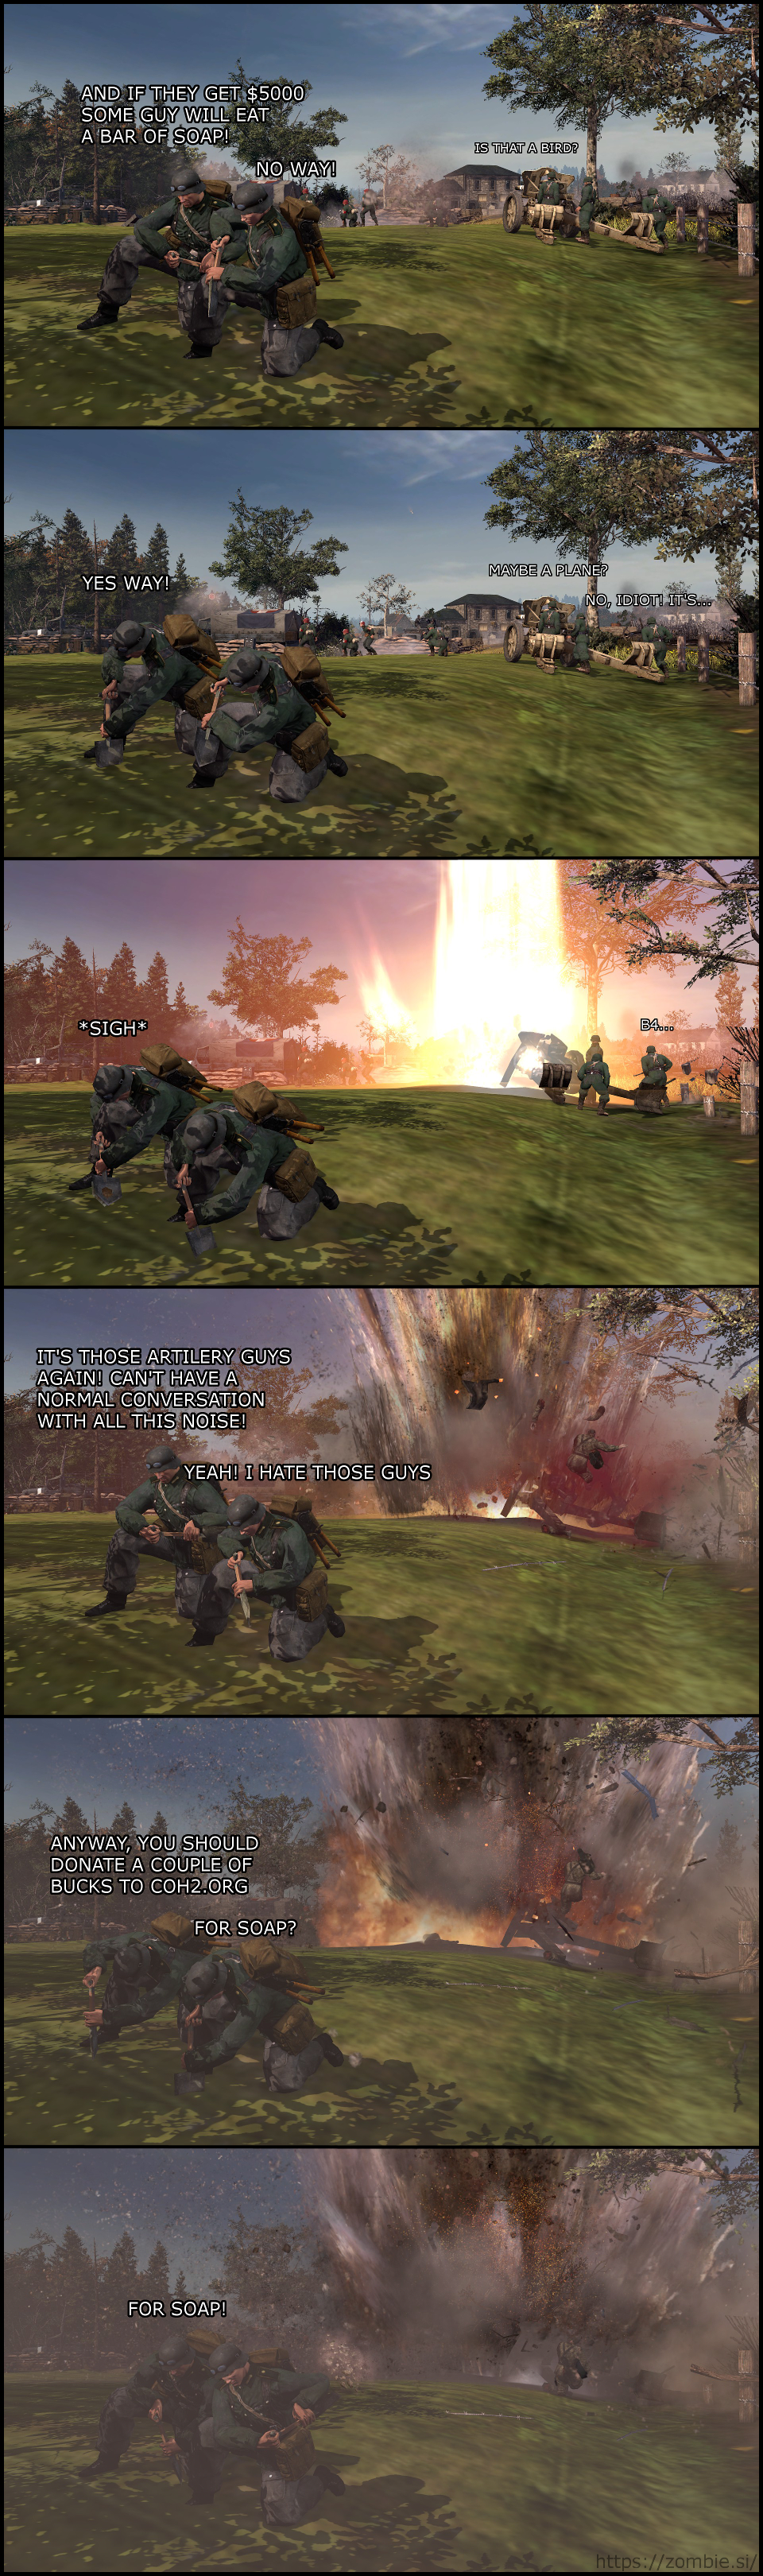 Coh 2 – For Soap!